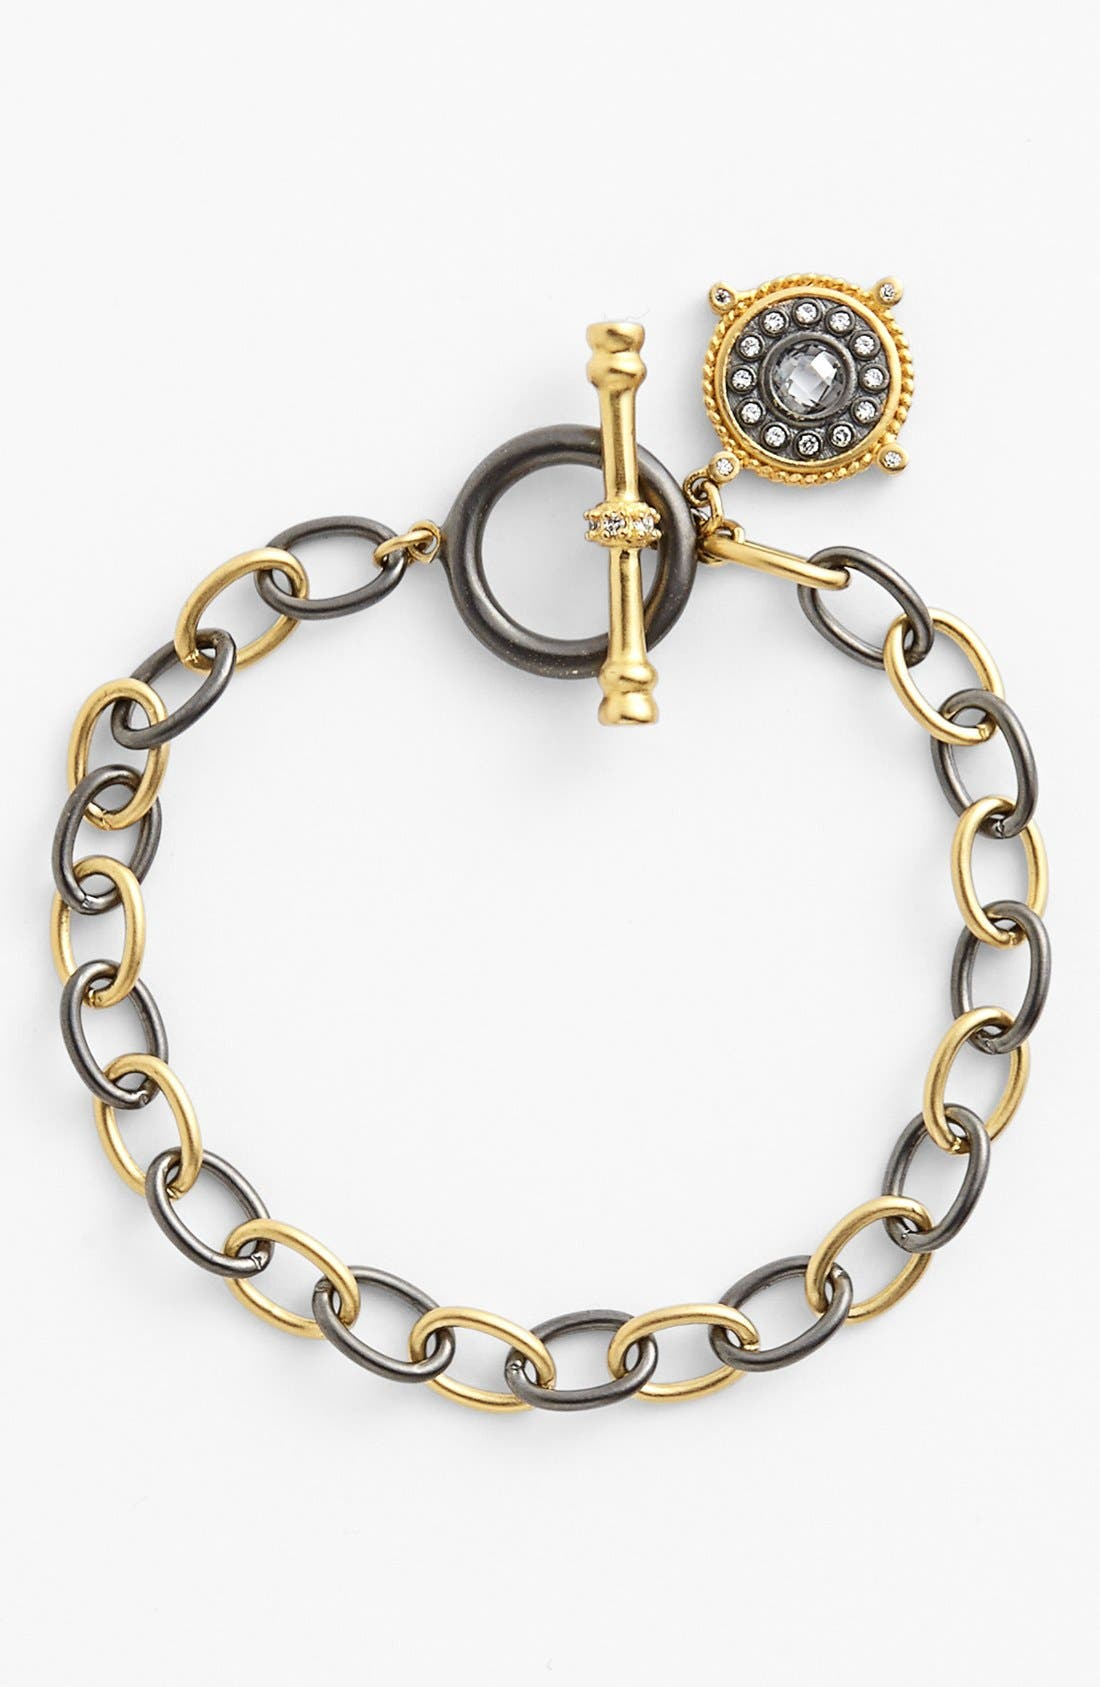 Main Image - FREIDA ROTHMAN 'Hamptons' Nautical Compass Charm Toggle Bracelet